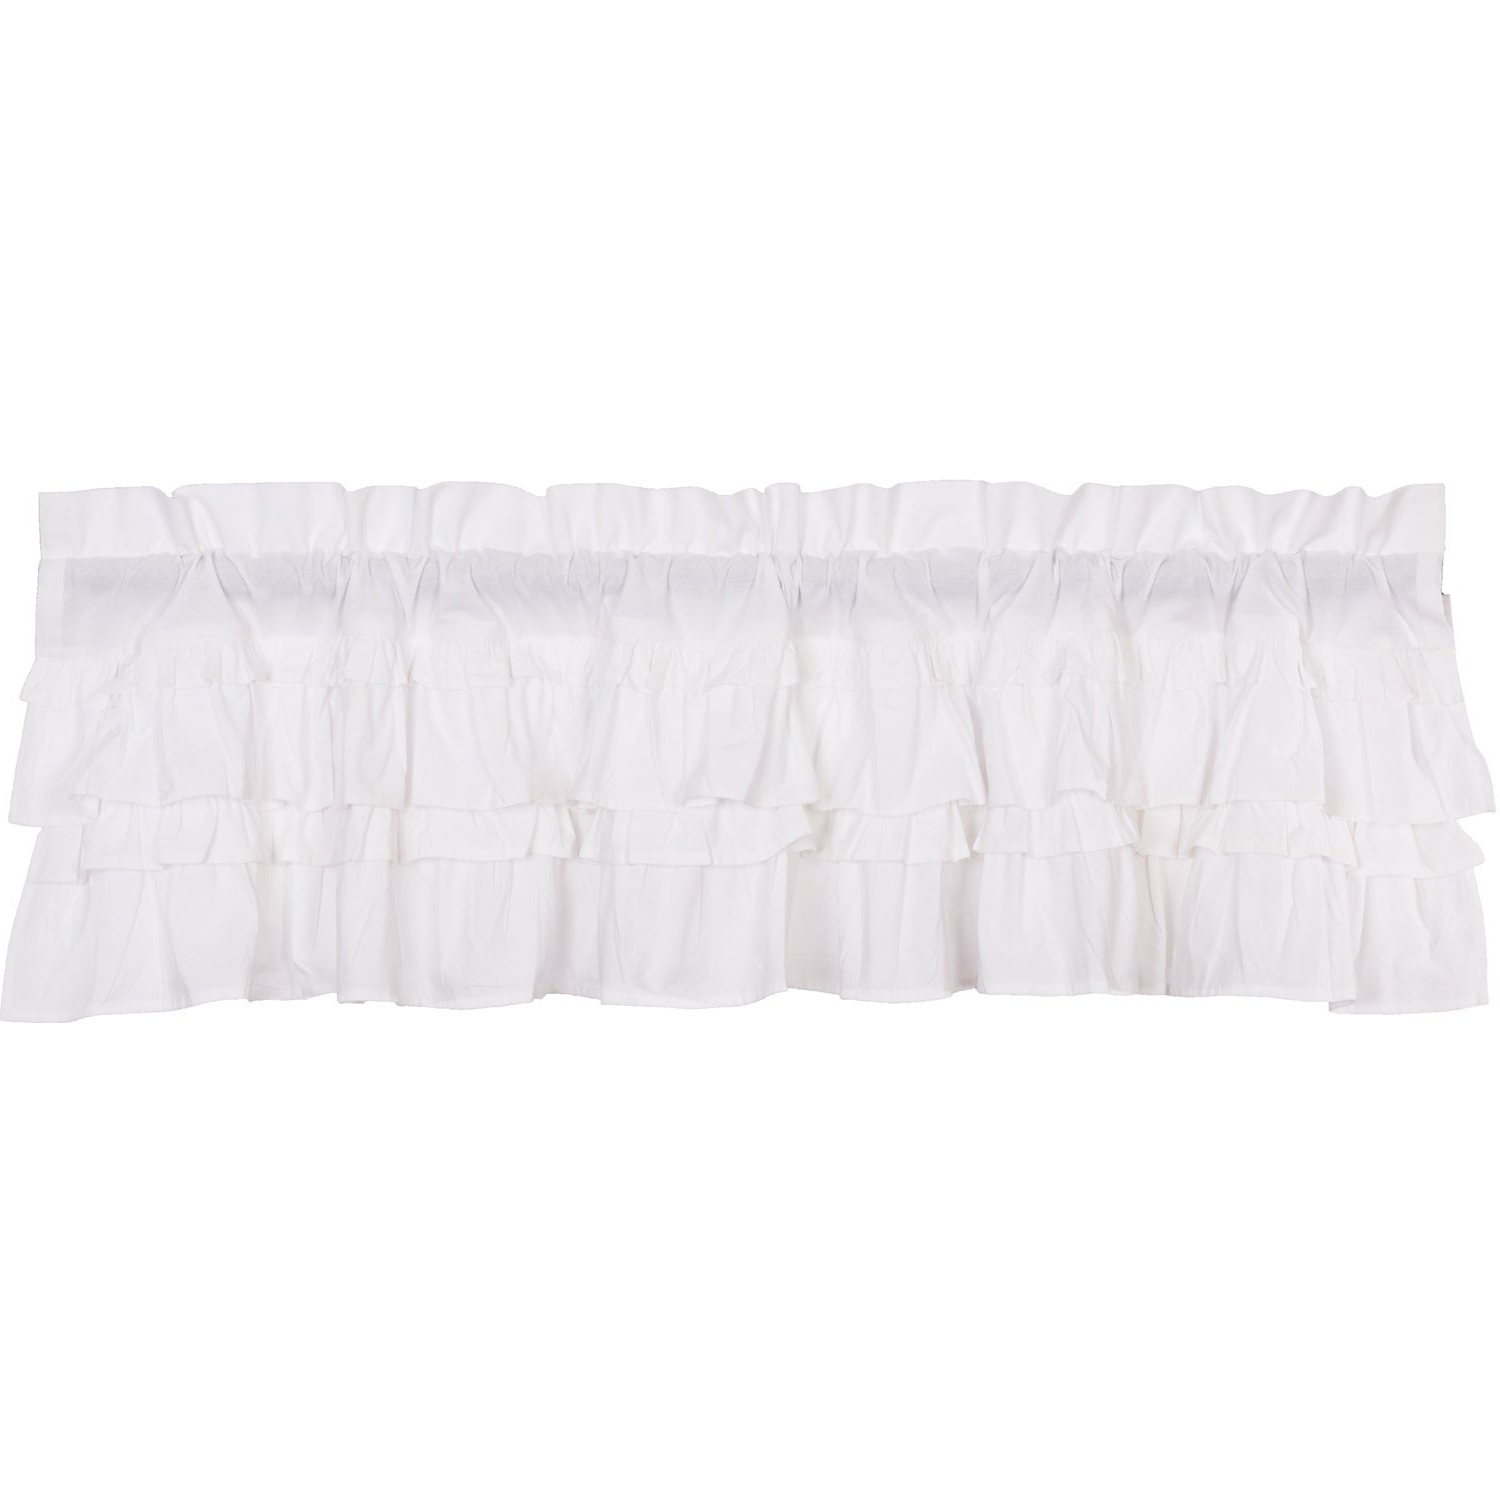 Best And Newest Rod Pocket Cotton Solid Color Ruched Ruffle Kitchen Curtains Regarding Farmhouse Kitchen Curtains Vhc Muslin Ruffled Valance Rod Pocket Cotton Solid Color Muslin (View 8 of 20)